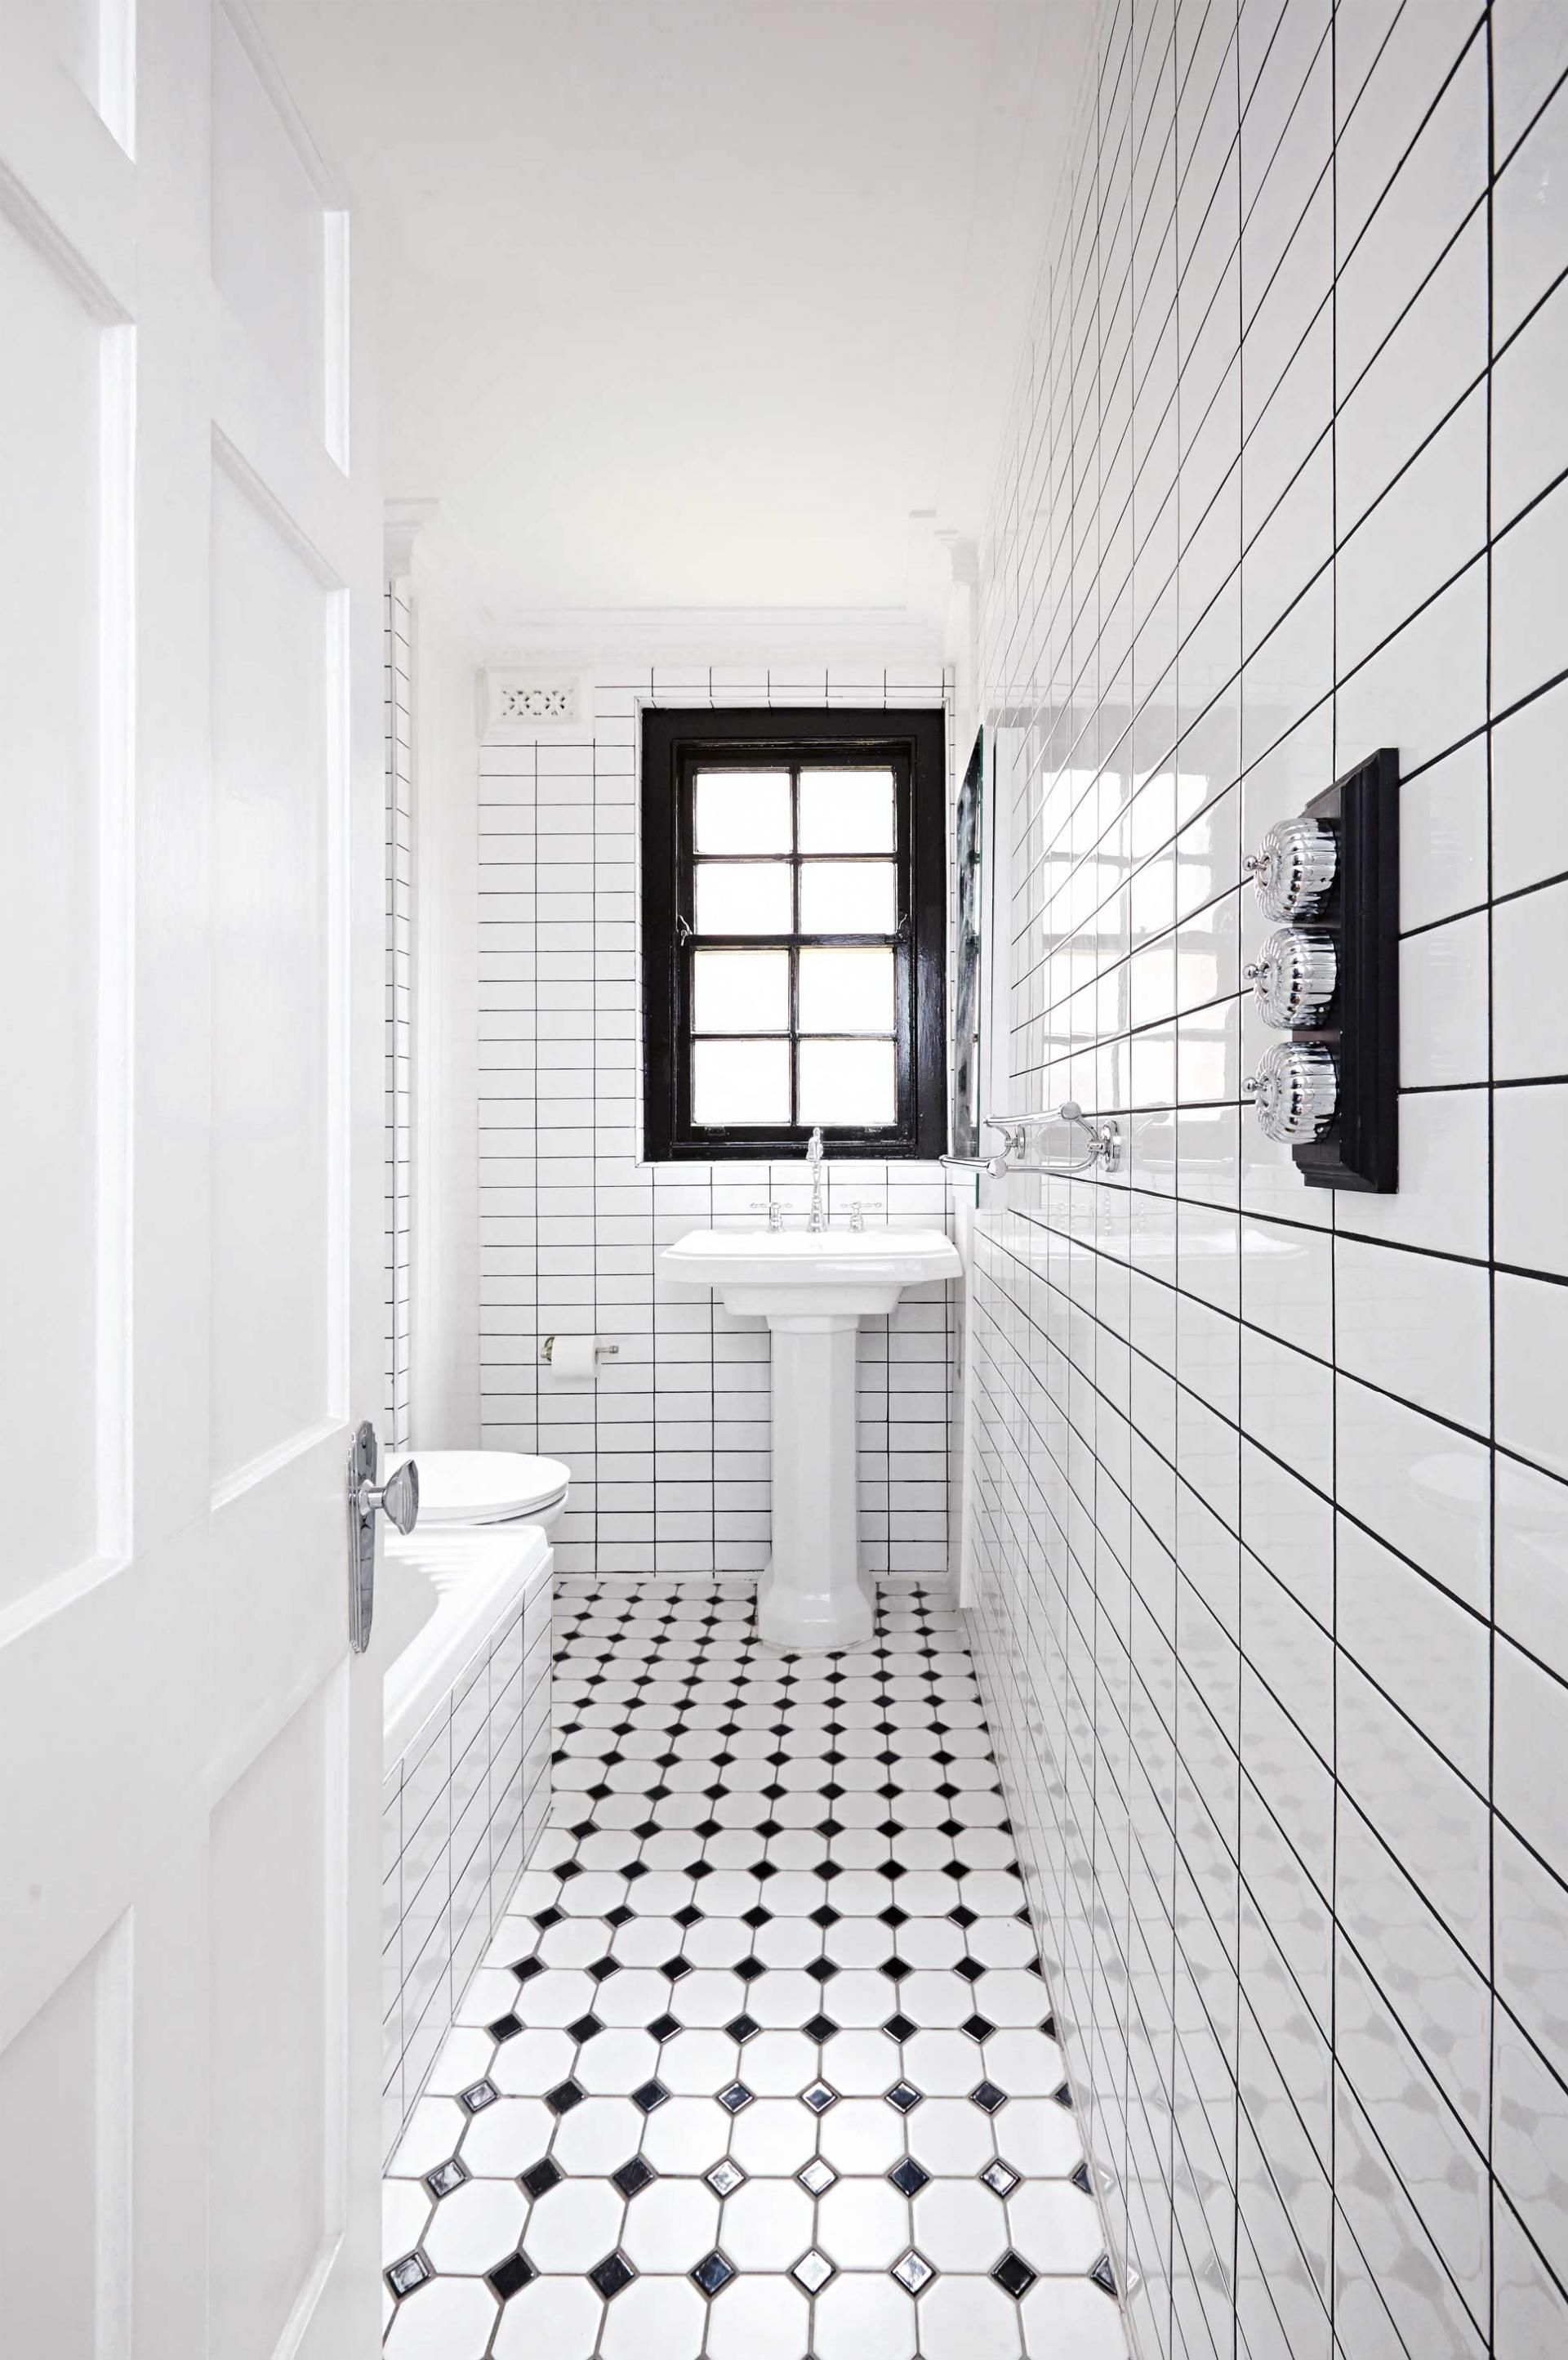 Bathroom ideas black and white - Small Black And White Bathroom Renovation From Insideout Com Au Photography By Alan